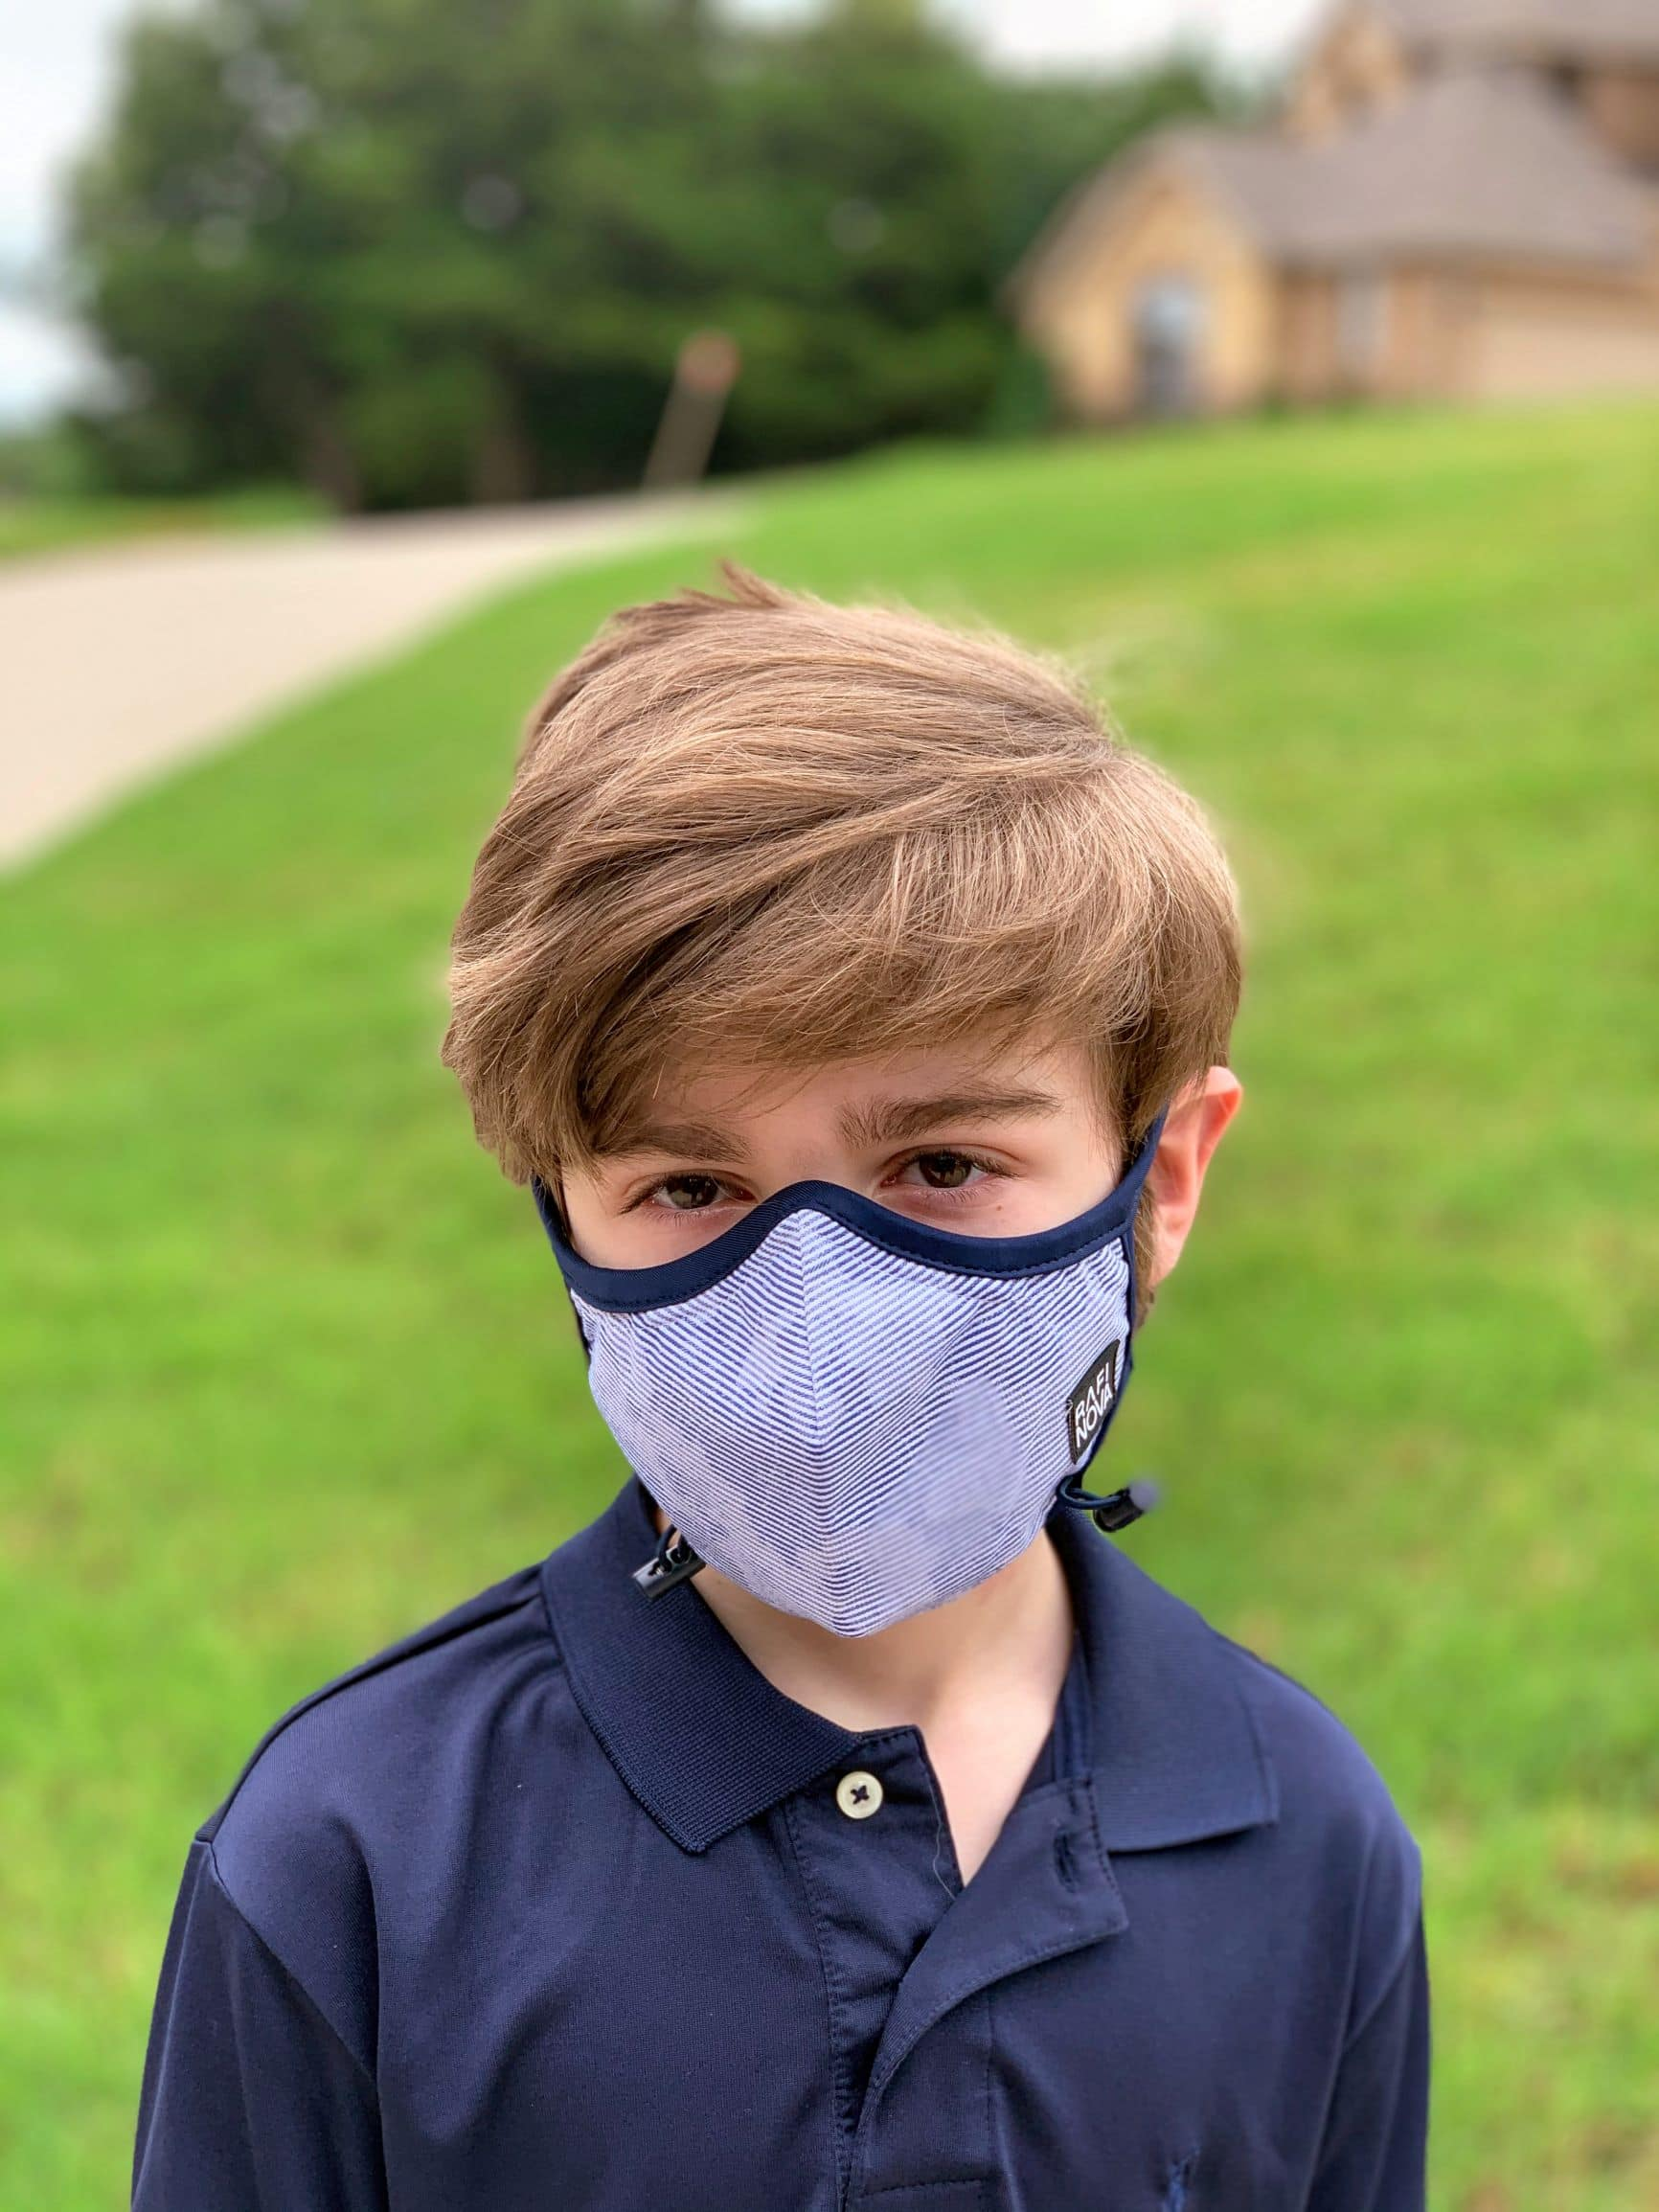 9 year old wearing a teen performance face mask